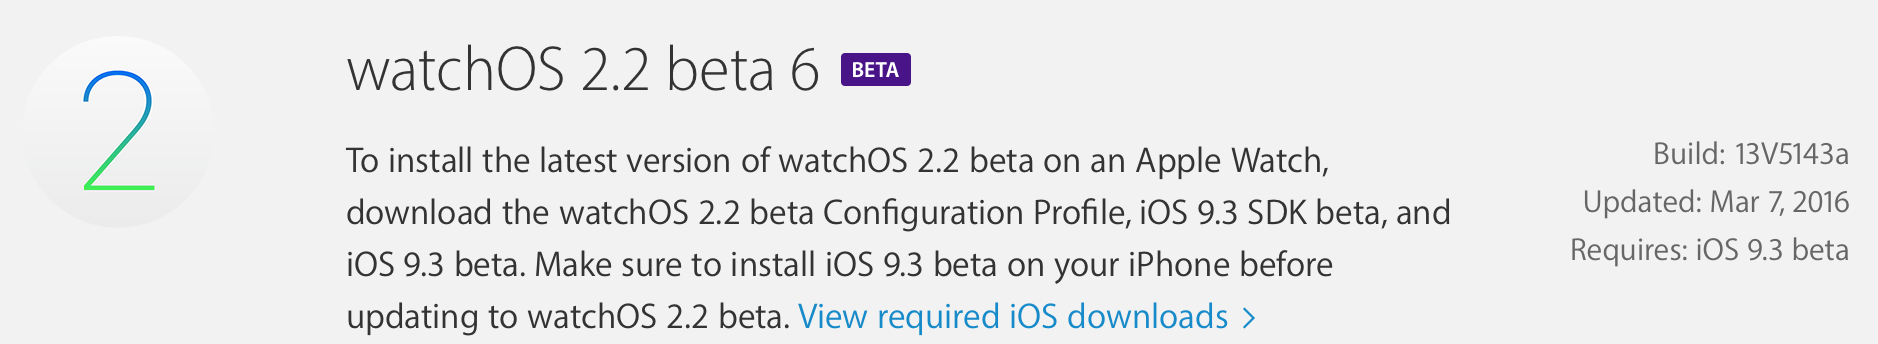 watchOS-Beta-Versionen-bildschirmfoto-2016-03-07-um-19.10.59.png